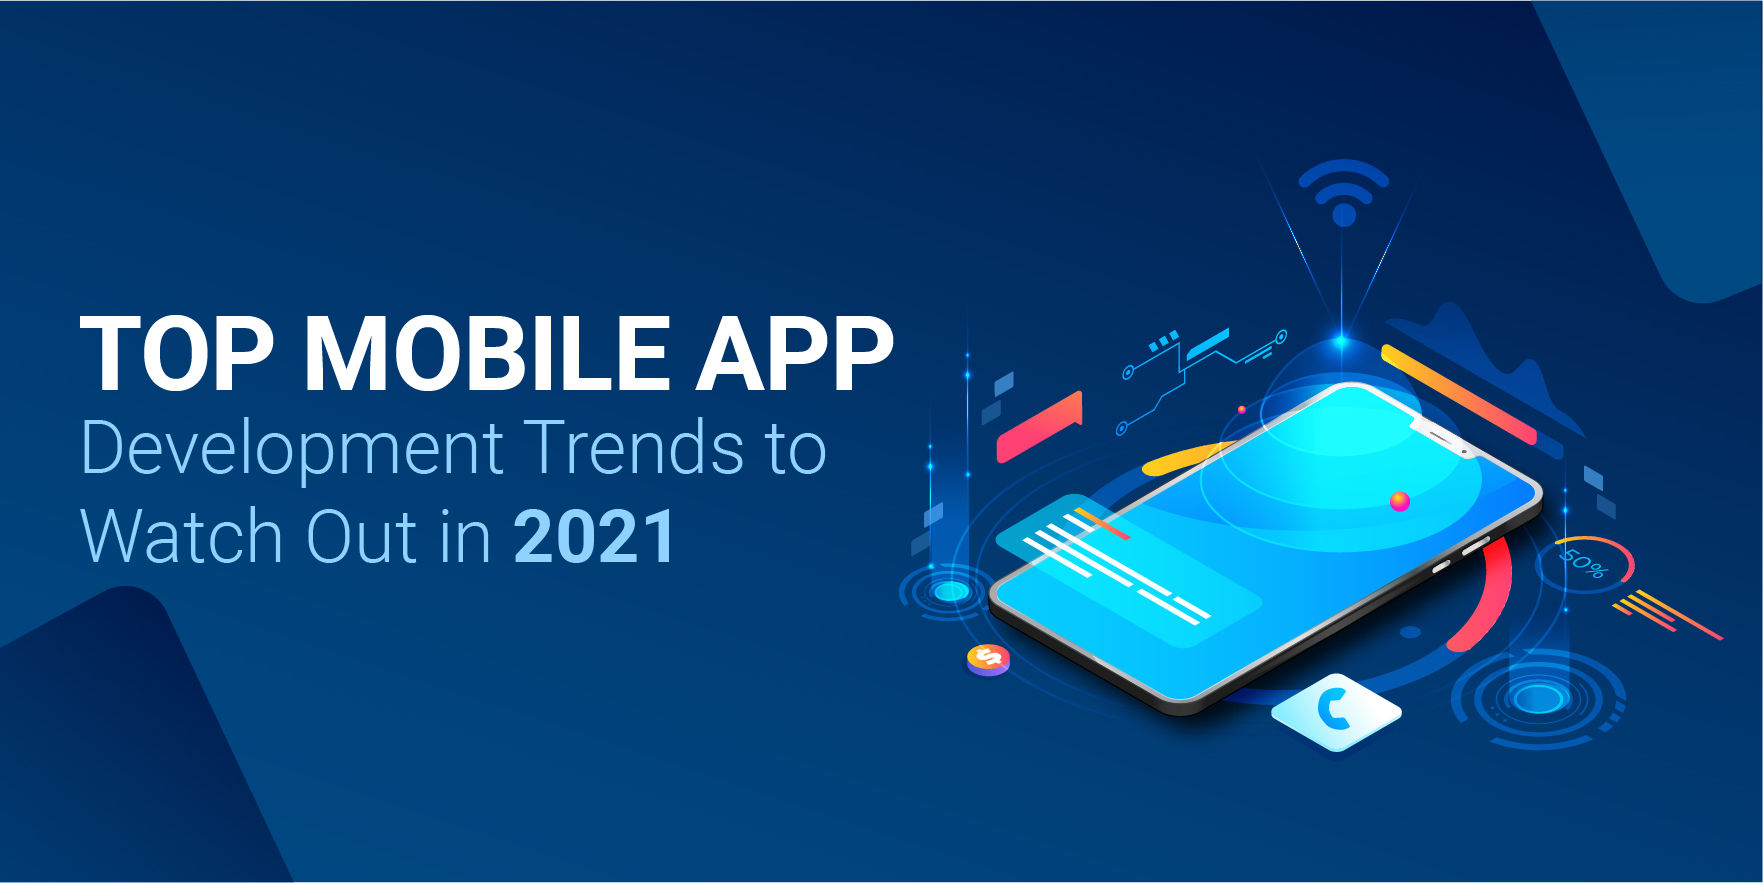 Top Mobile App Development Trends to Watch for 2021